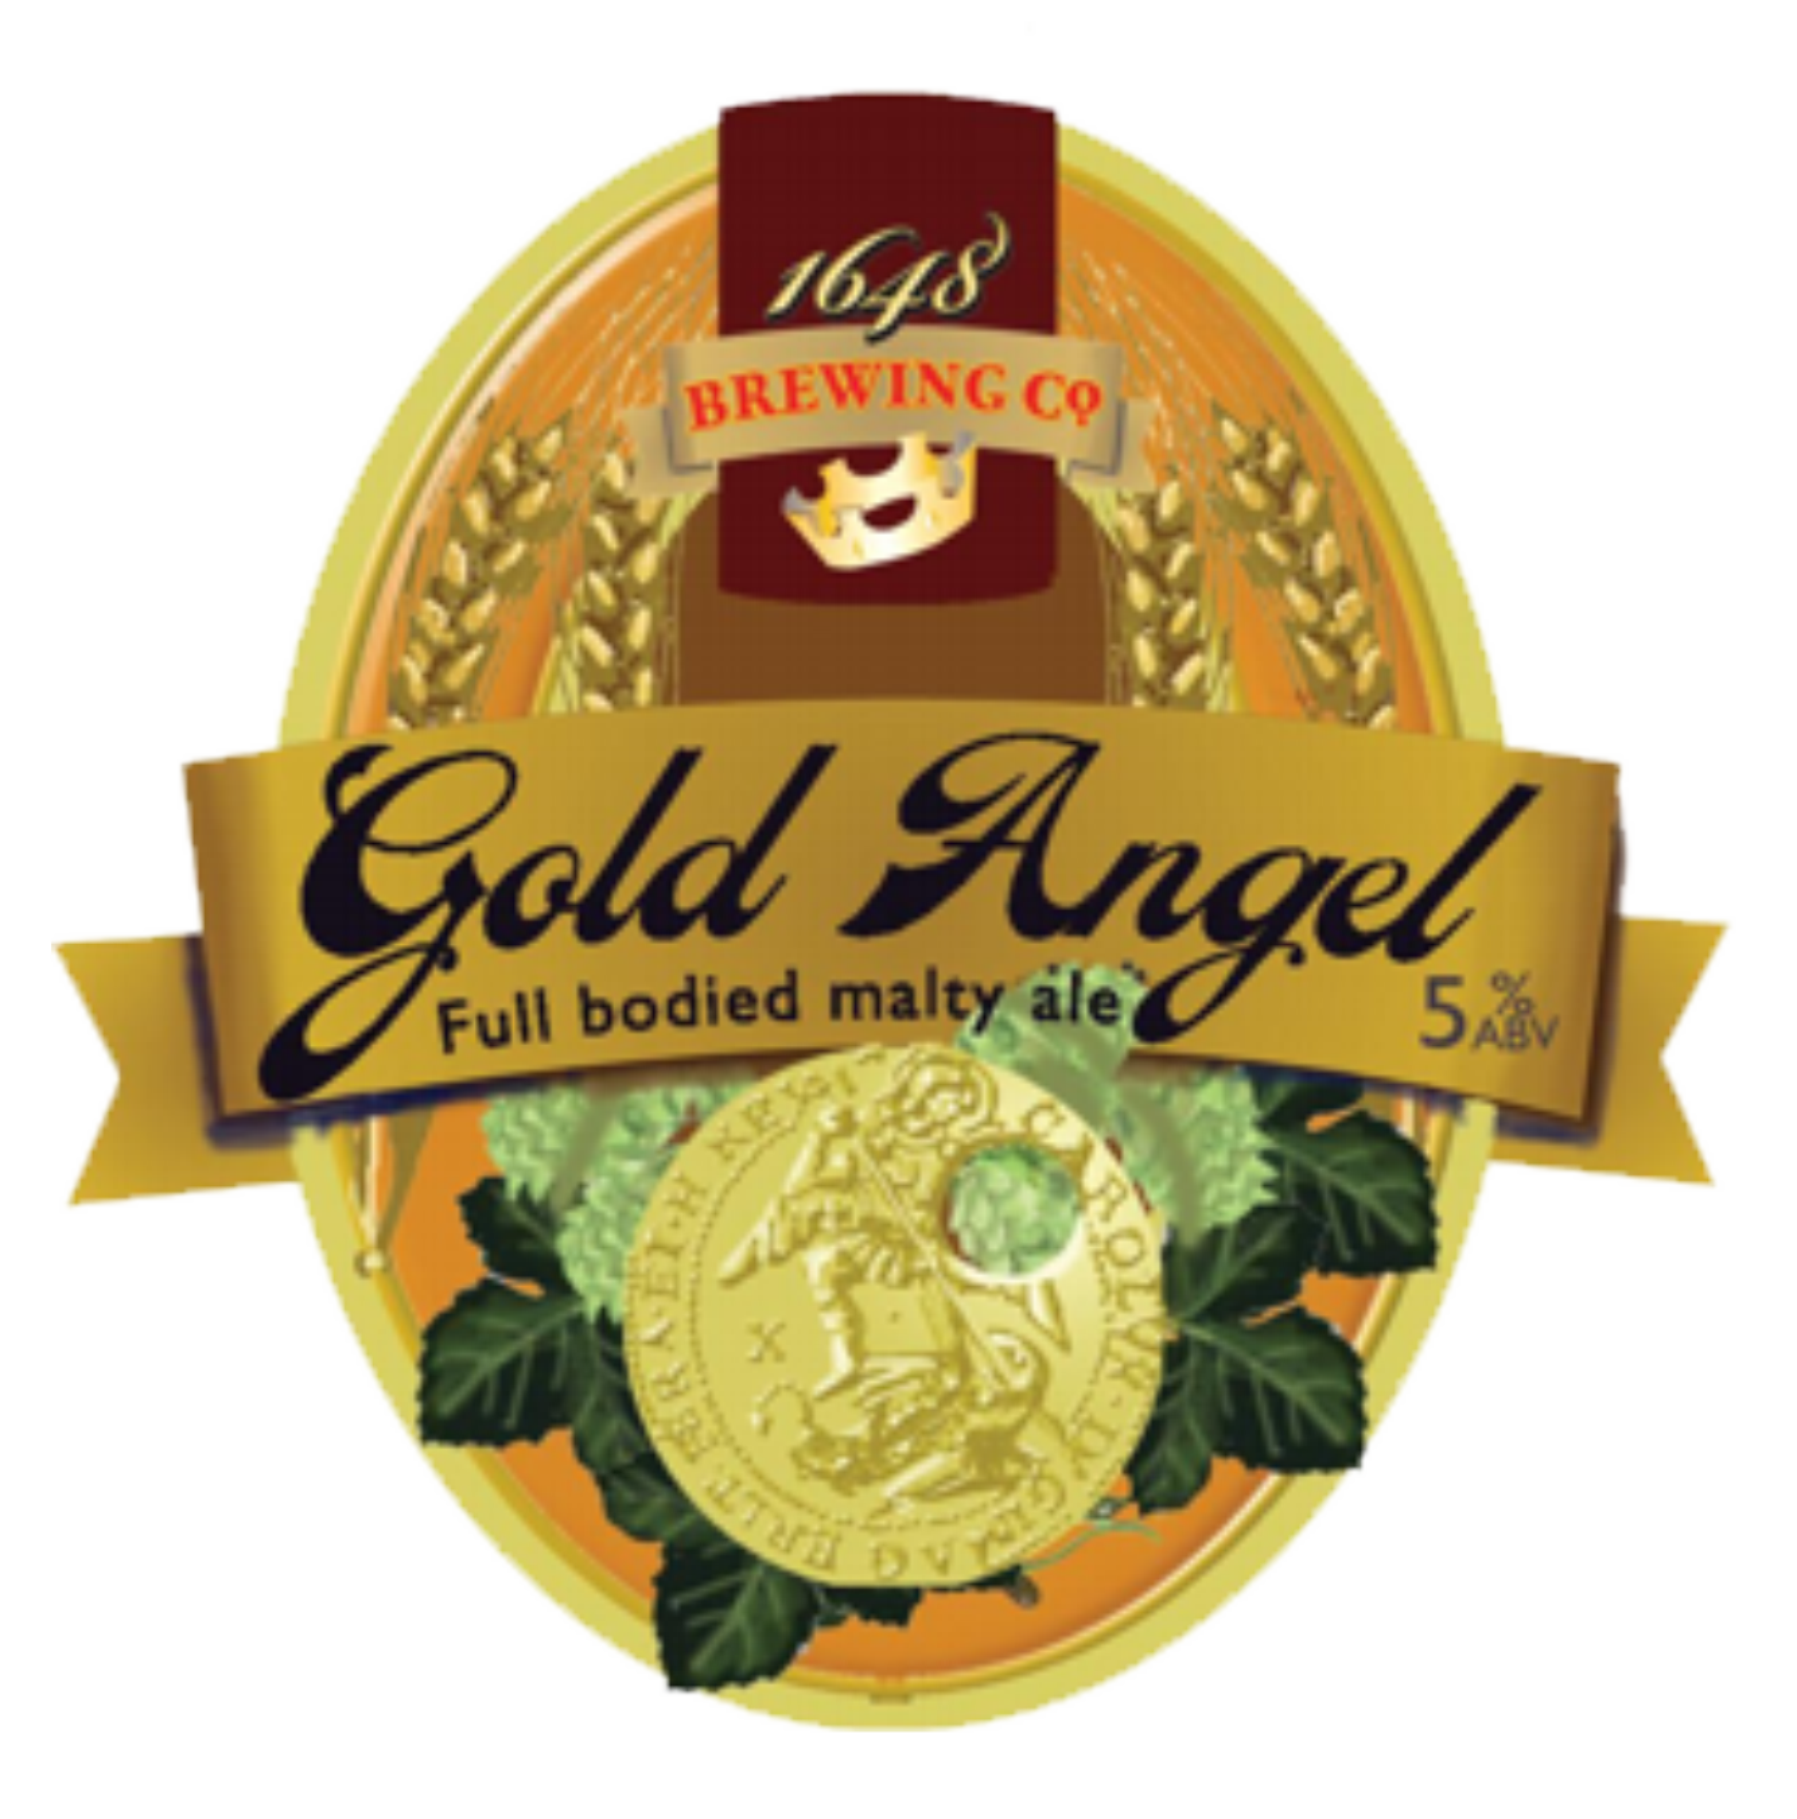 Gold Angel 5.0%